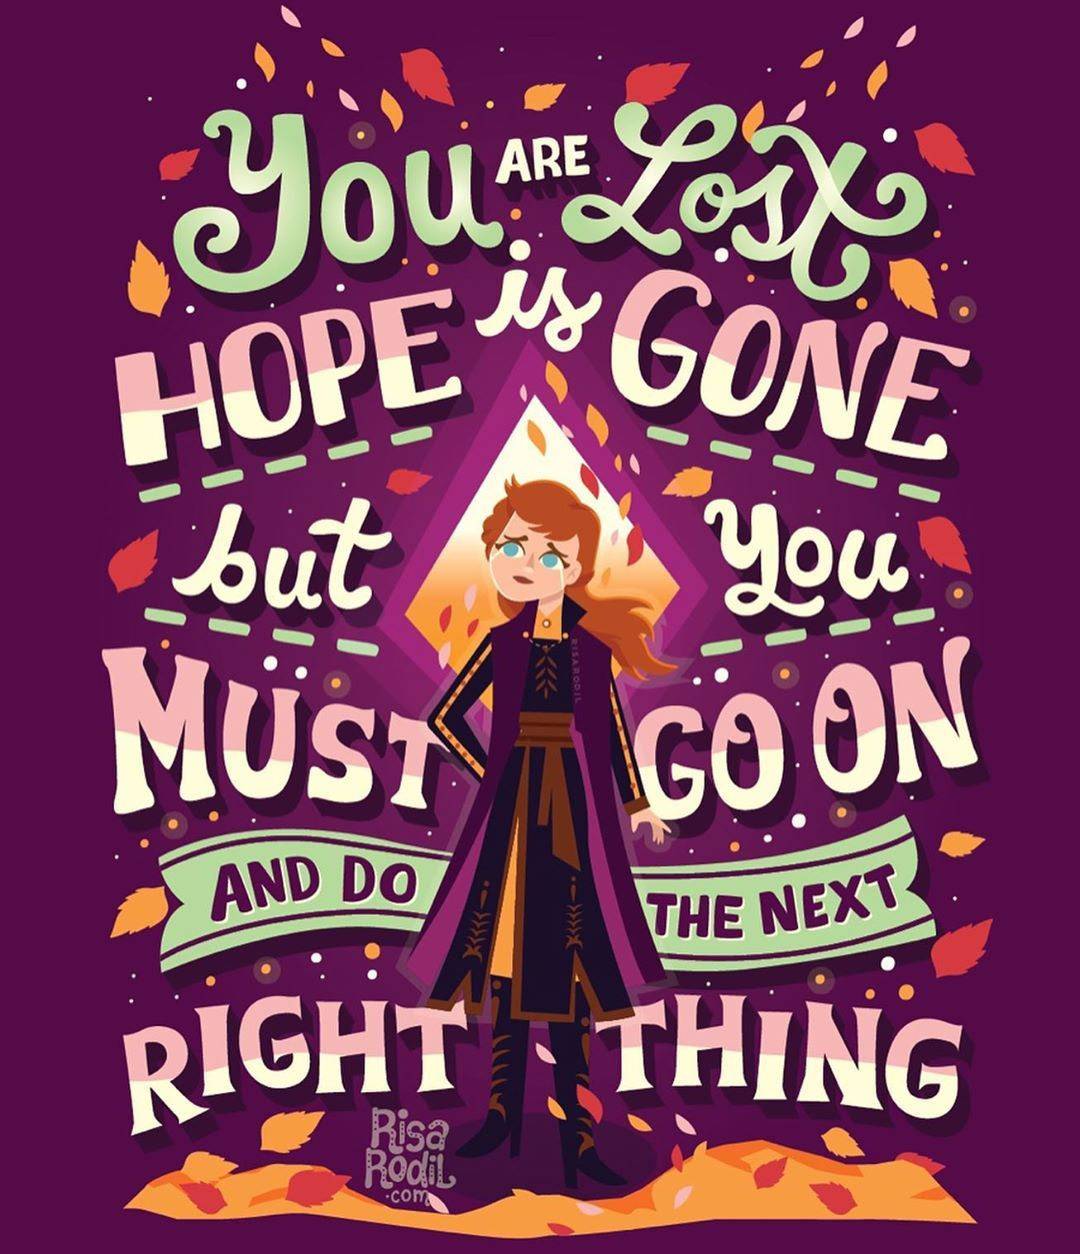 Right Thing Frozen Artwork By Risa Rodil Affiliate Frozen Disney Movie Disney Songs Disney Princess Quotes